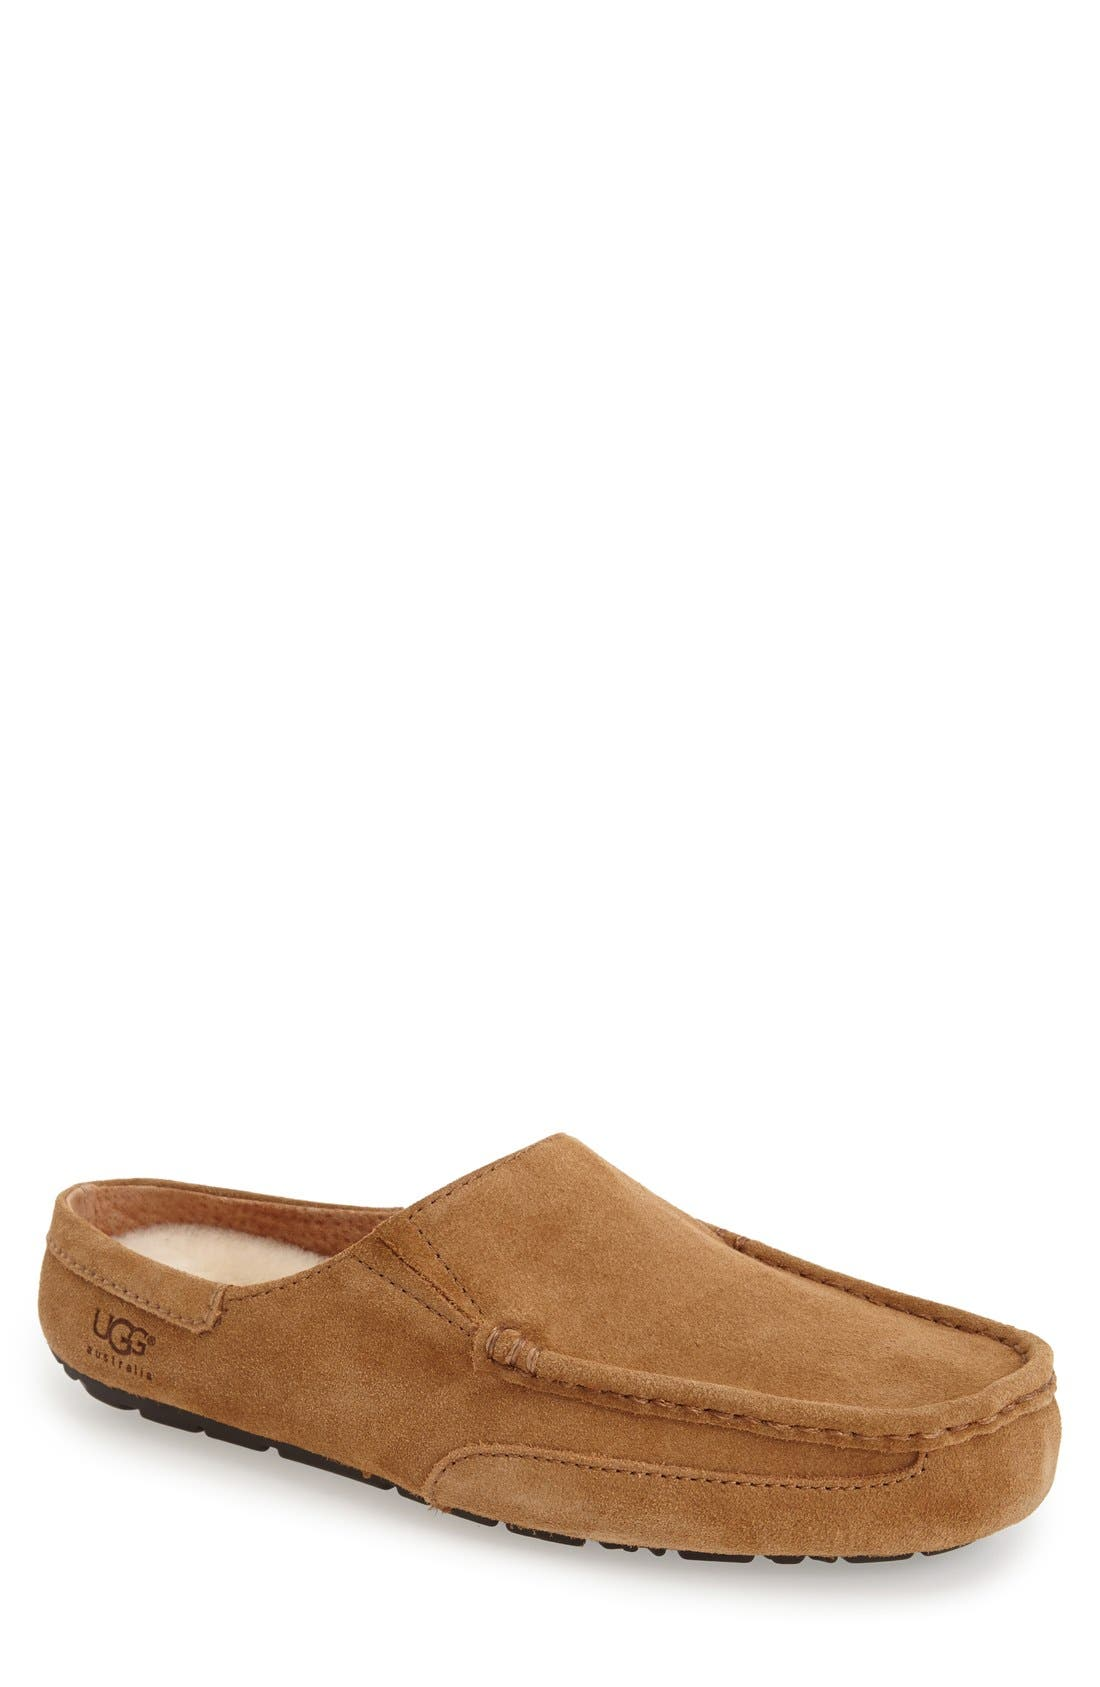 Main Image - UGG® Alamar Twinsole® Slip-On (Men)